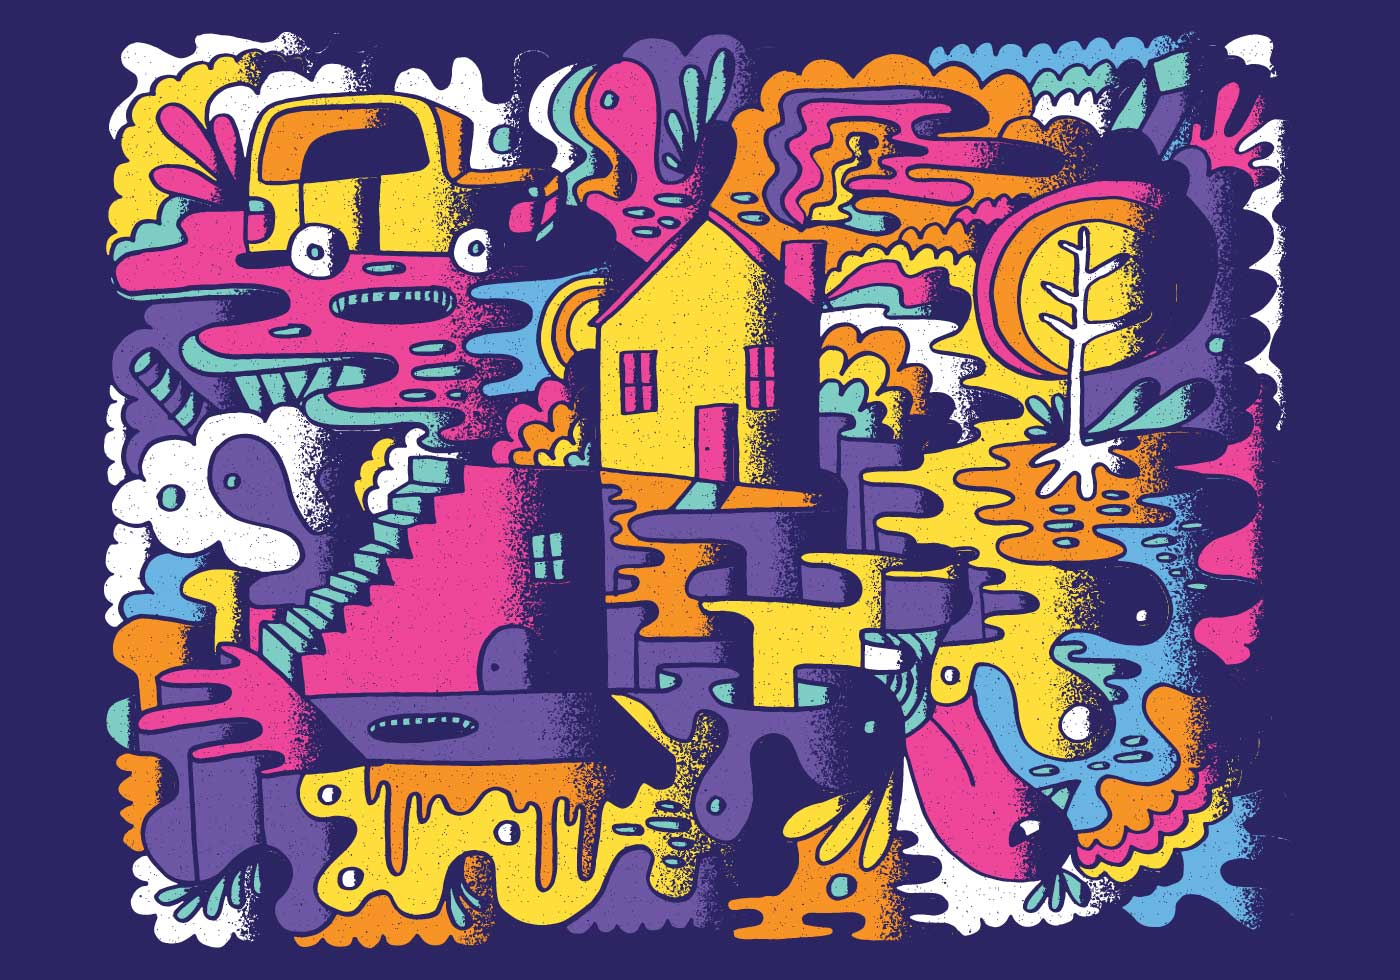 Colorful Abstract Doodle Vector - Download Free Vectors ...